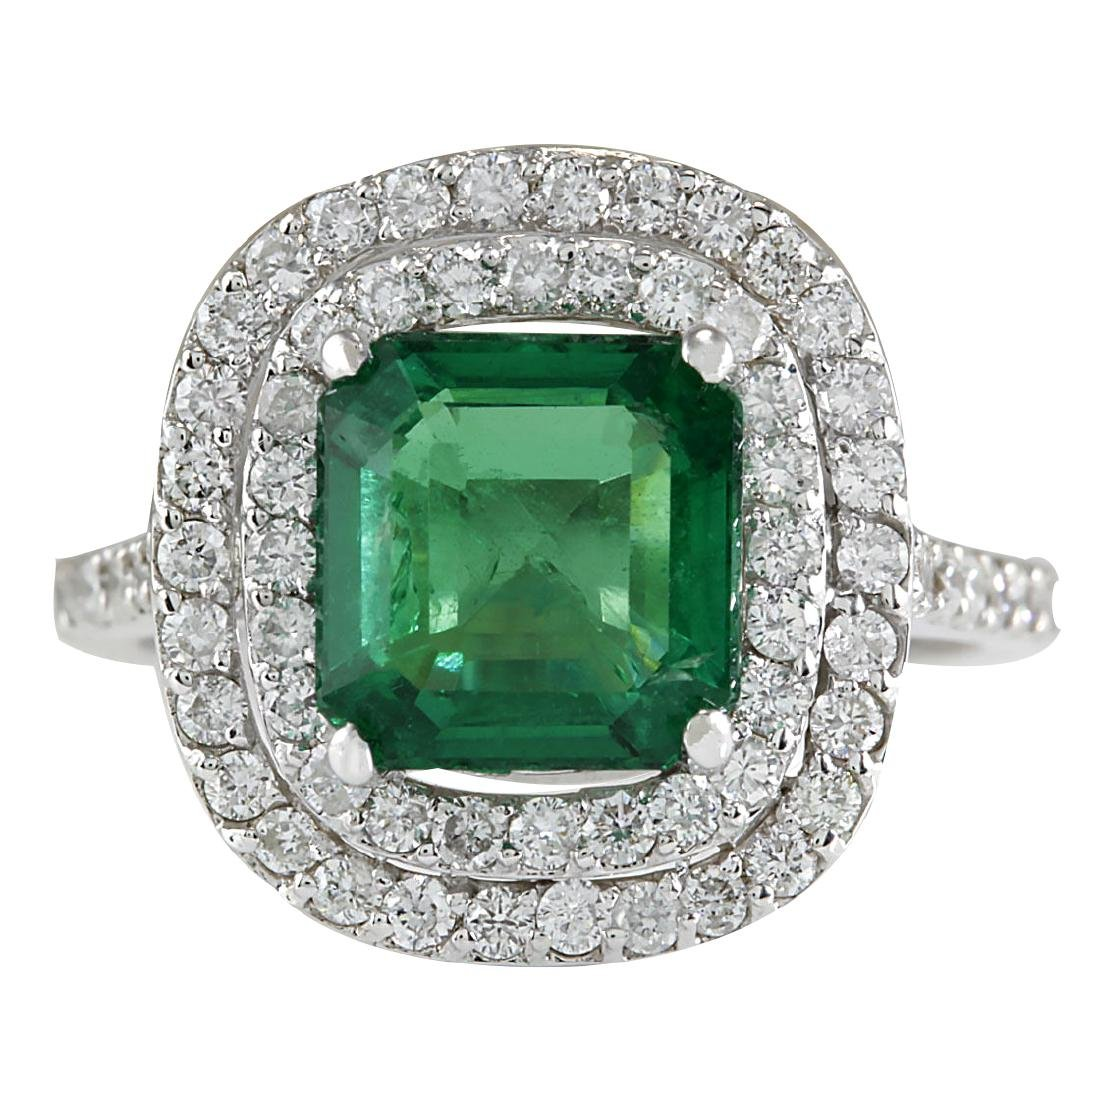 3.62CTW Natural Emerald And Diamond Ring In 18K White